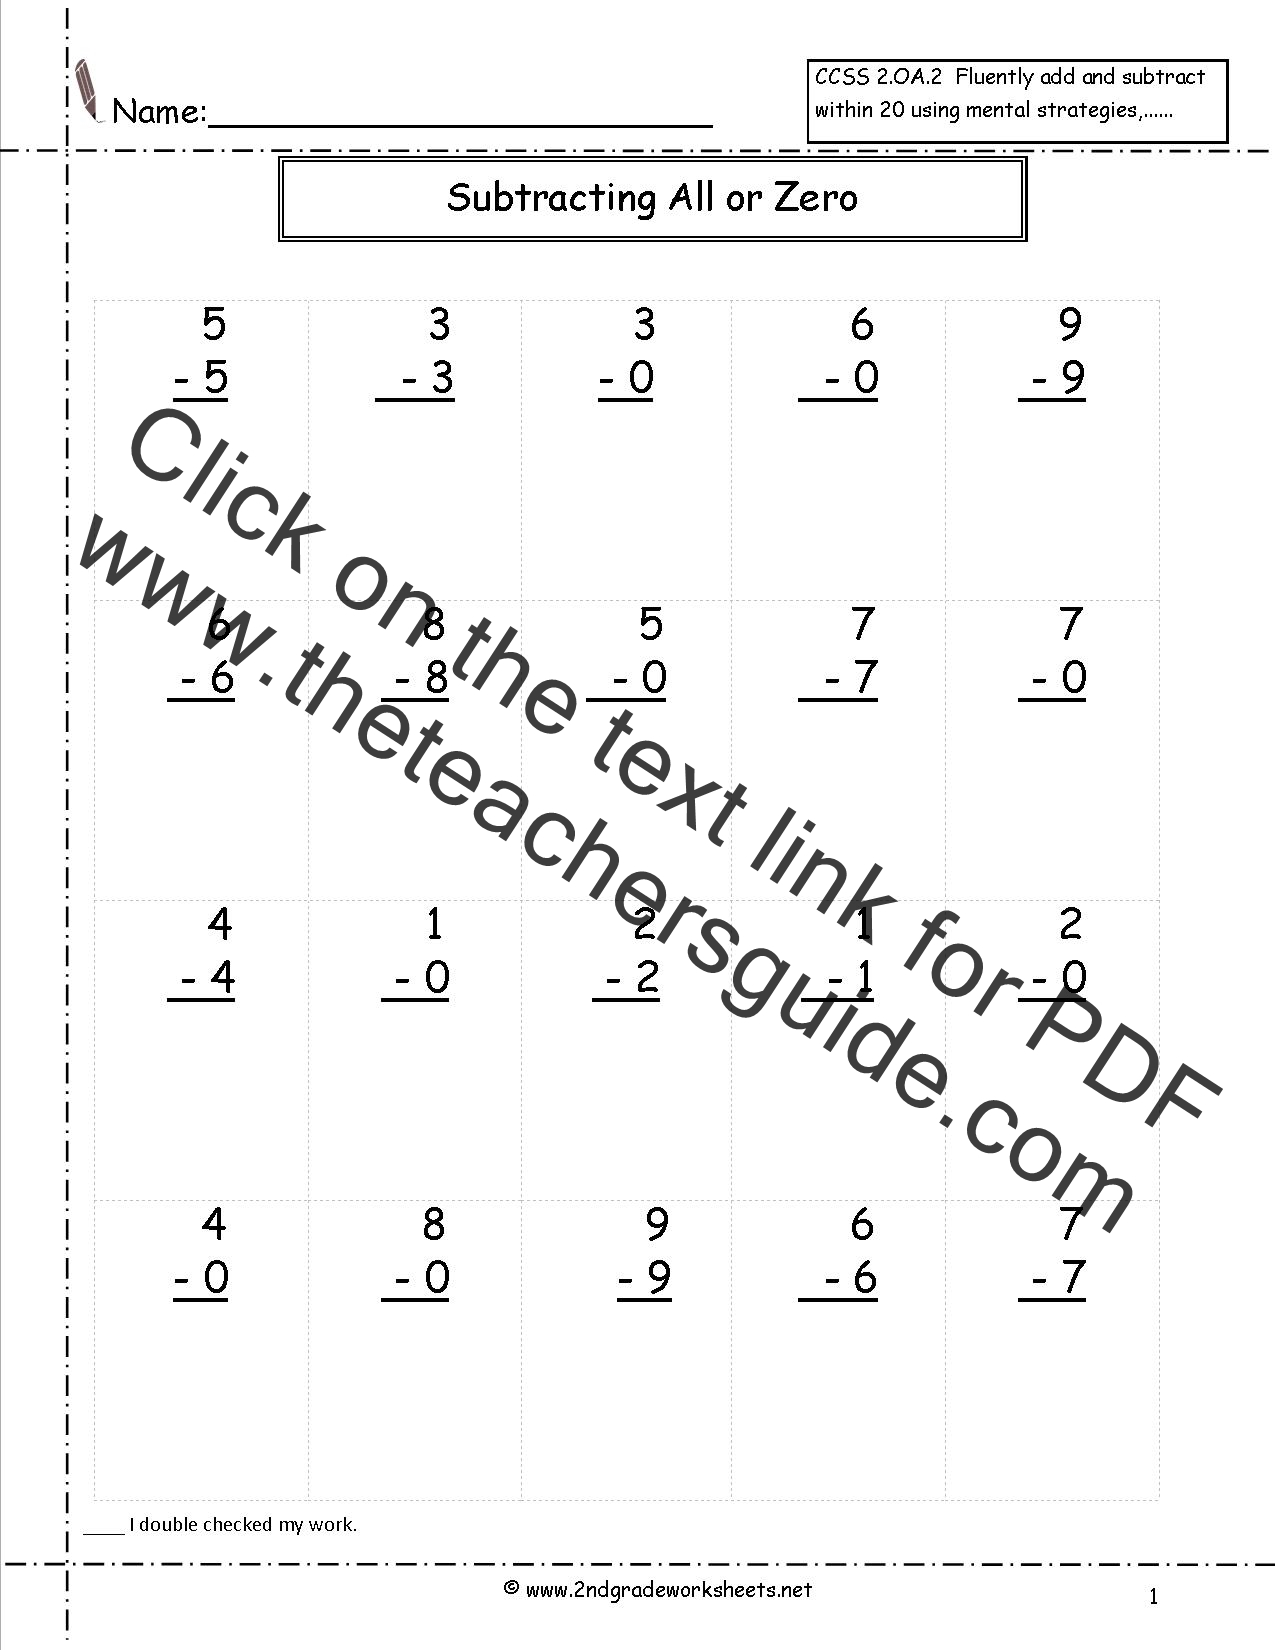 Single Digit Subtraction Fluency Worksheets – Subtracting with Zeros Worksheet